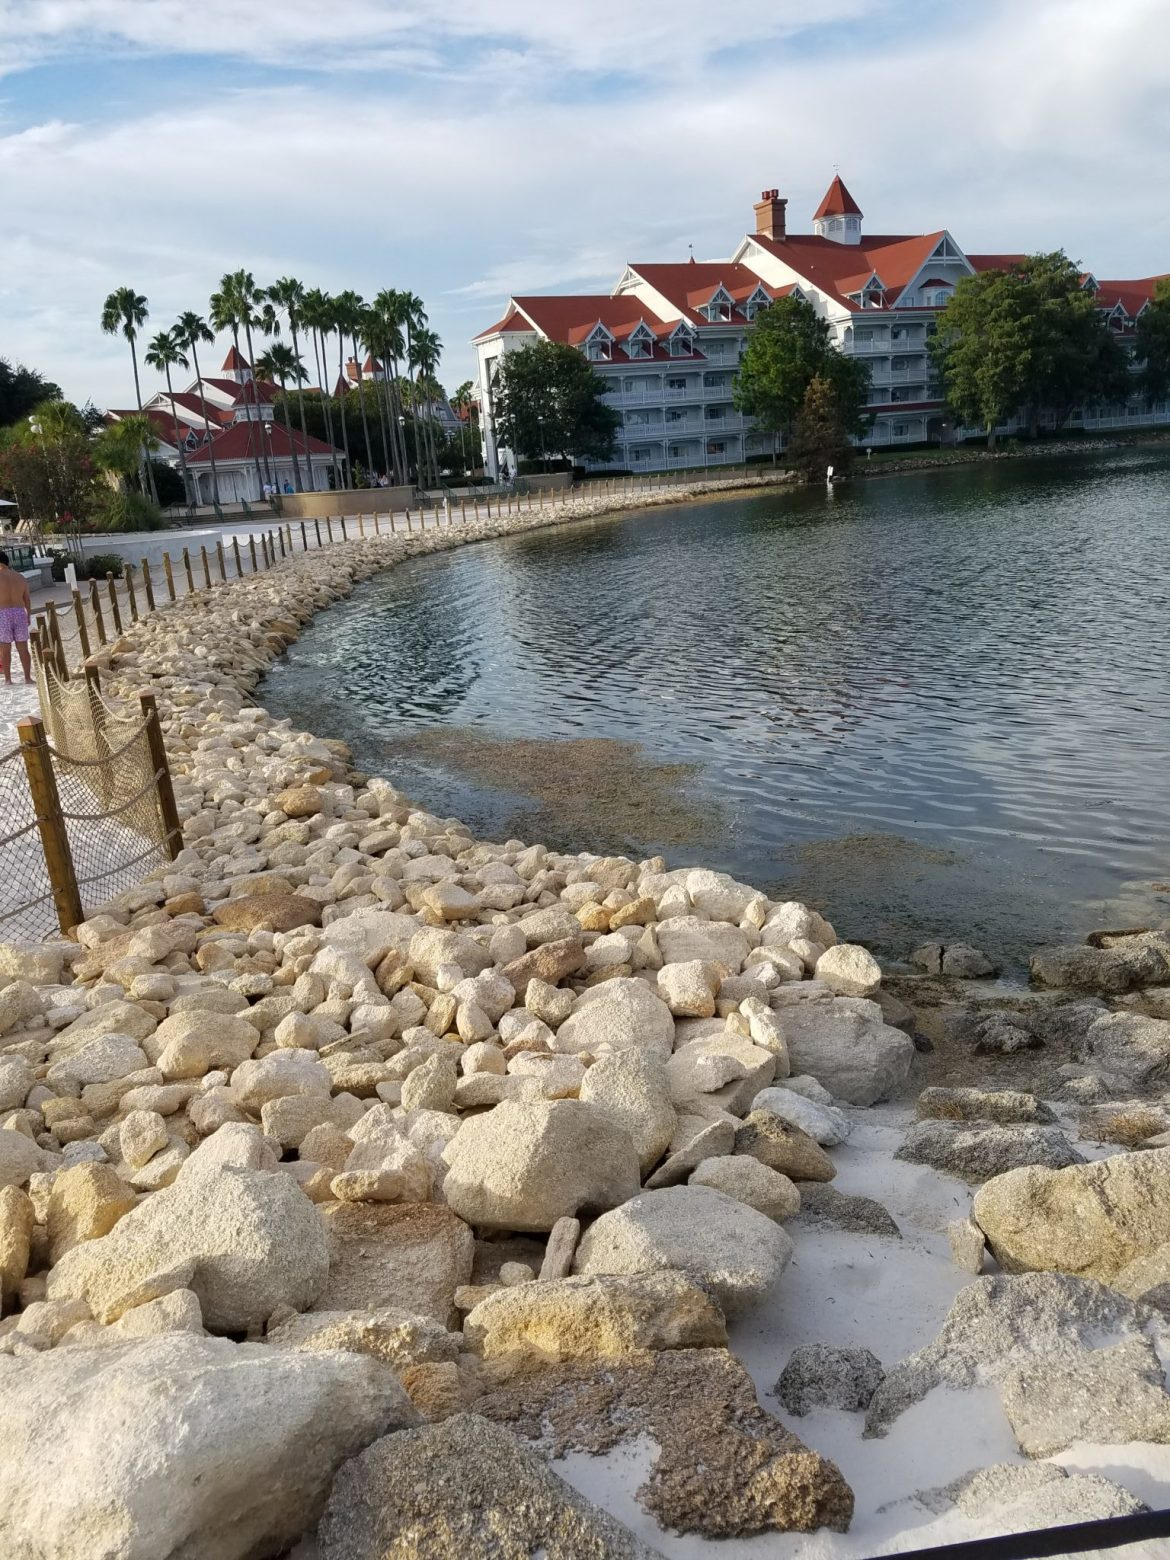 From Sand to Rocks: Changes to Grand Floridian Shoreline